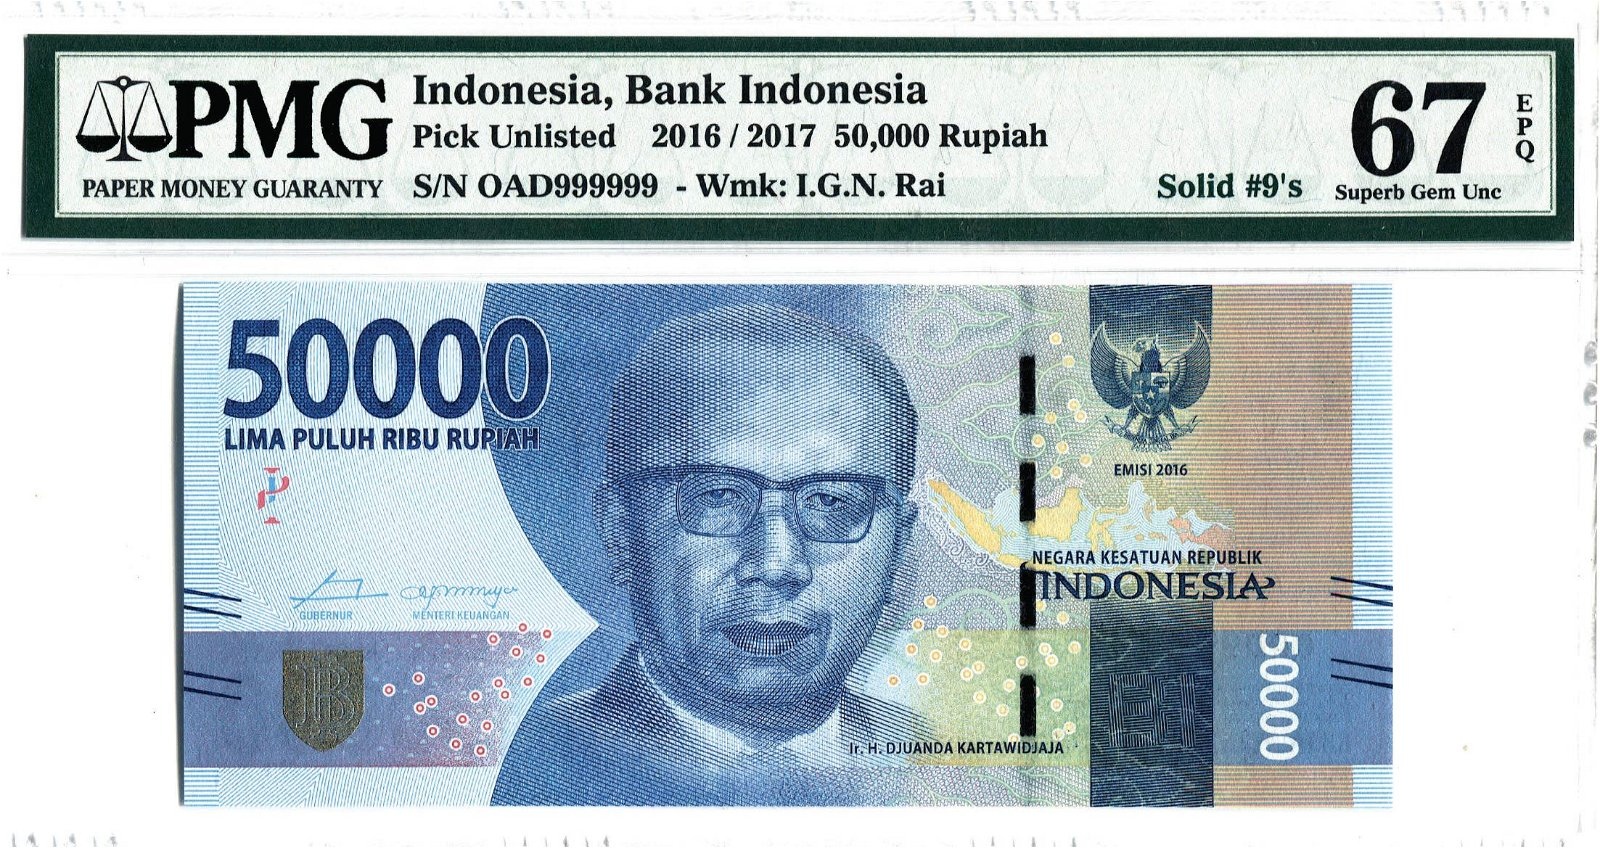 Indonesia 2016/17, 50,000 Rupiah Solid 9's OAD 999999,